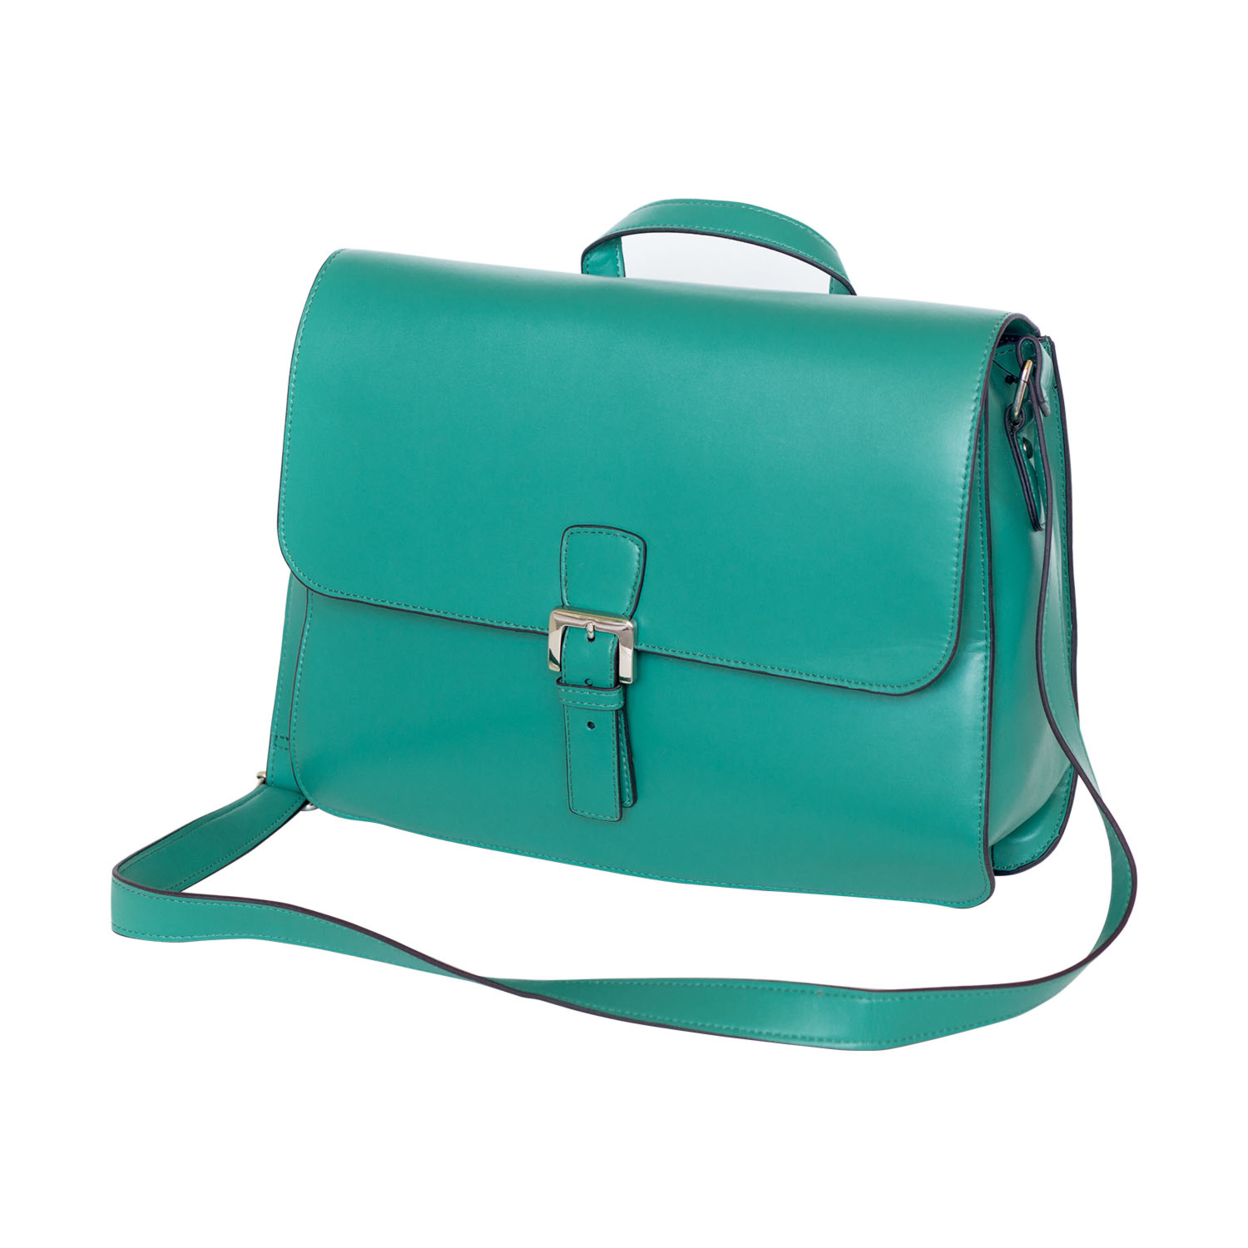 Offex Women's Lily Emerald Fashion Mini Messenger Bag бриджи balatt бриджи